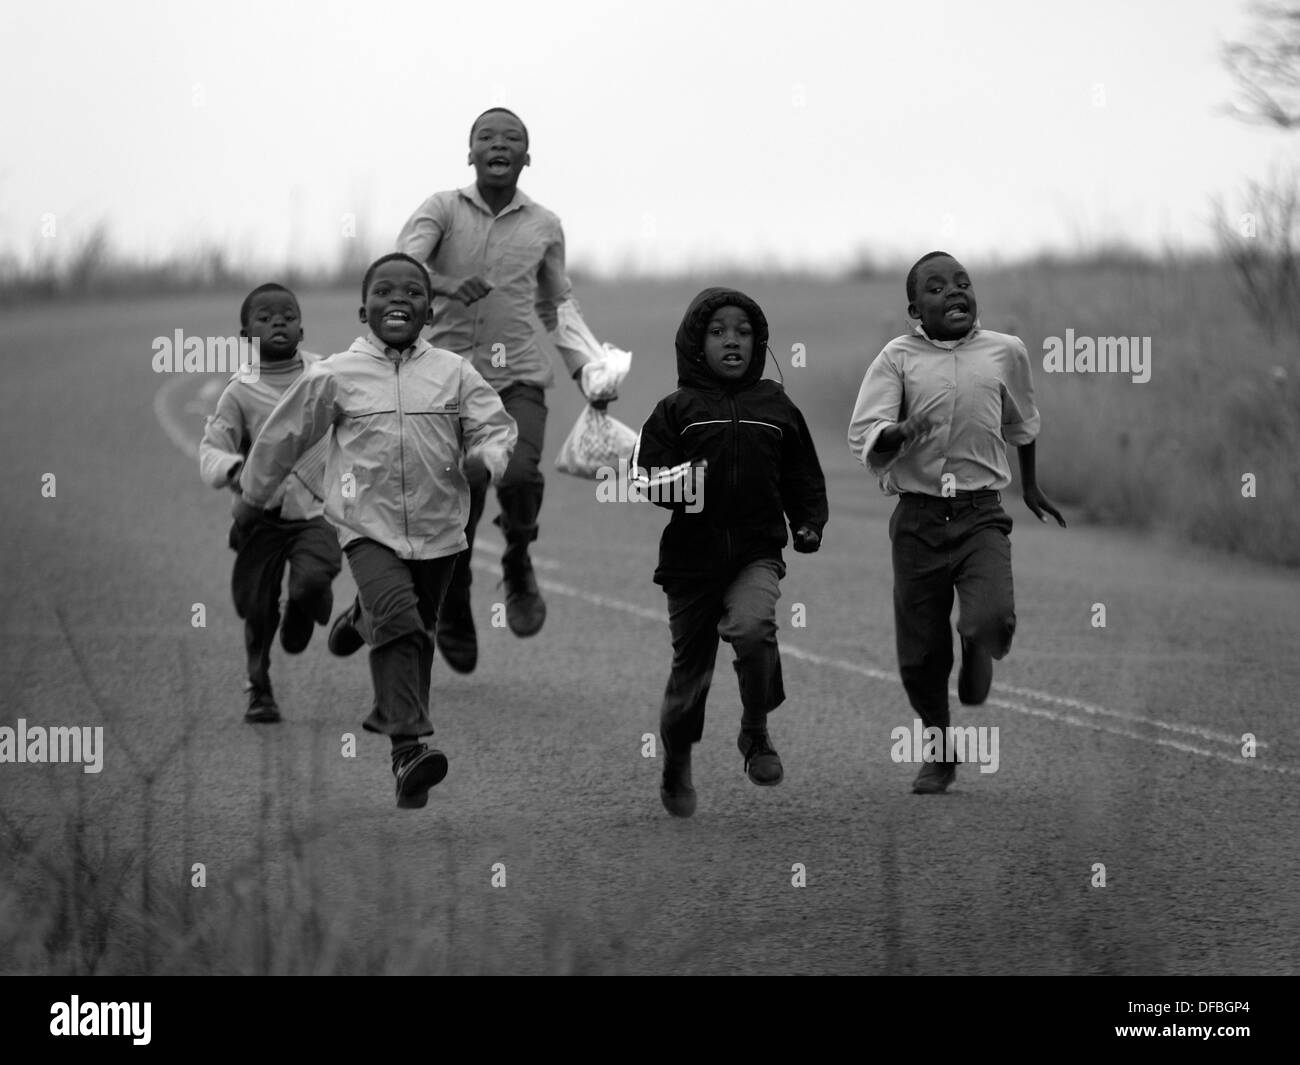 Children run to school to school in Umlaas Road, 18 October 2007. - Stock Image